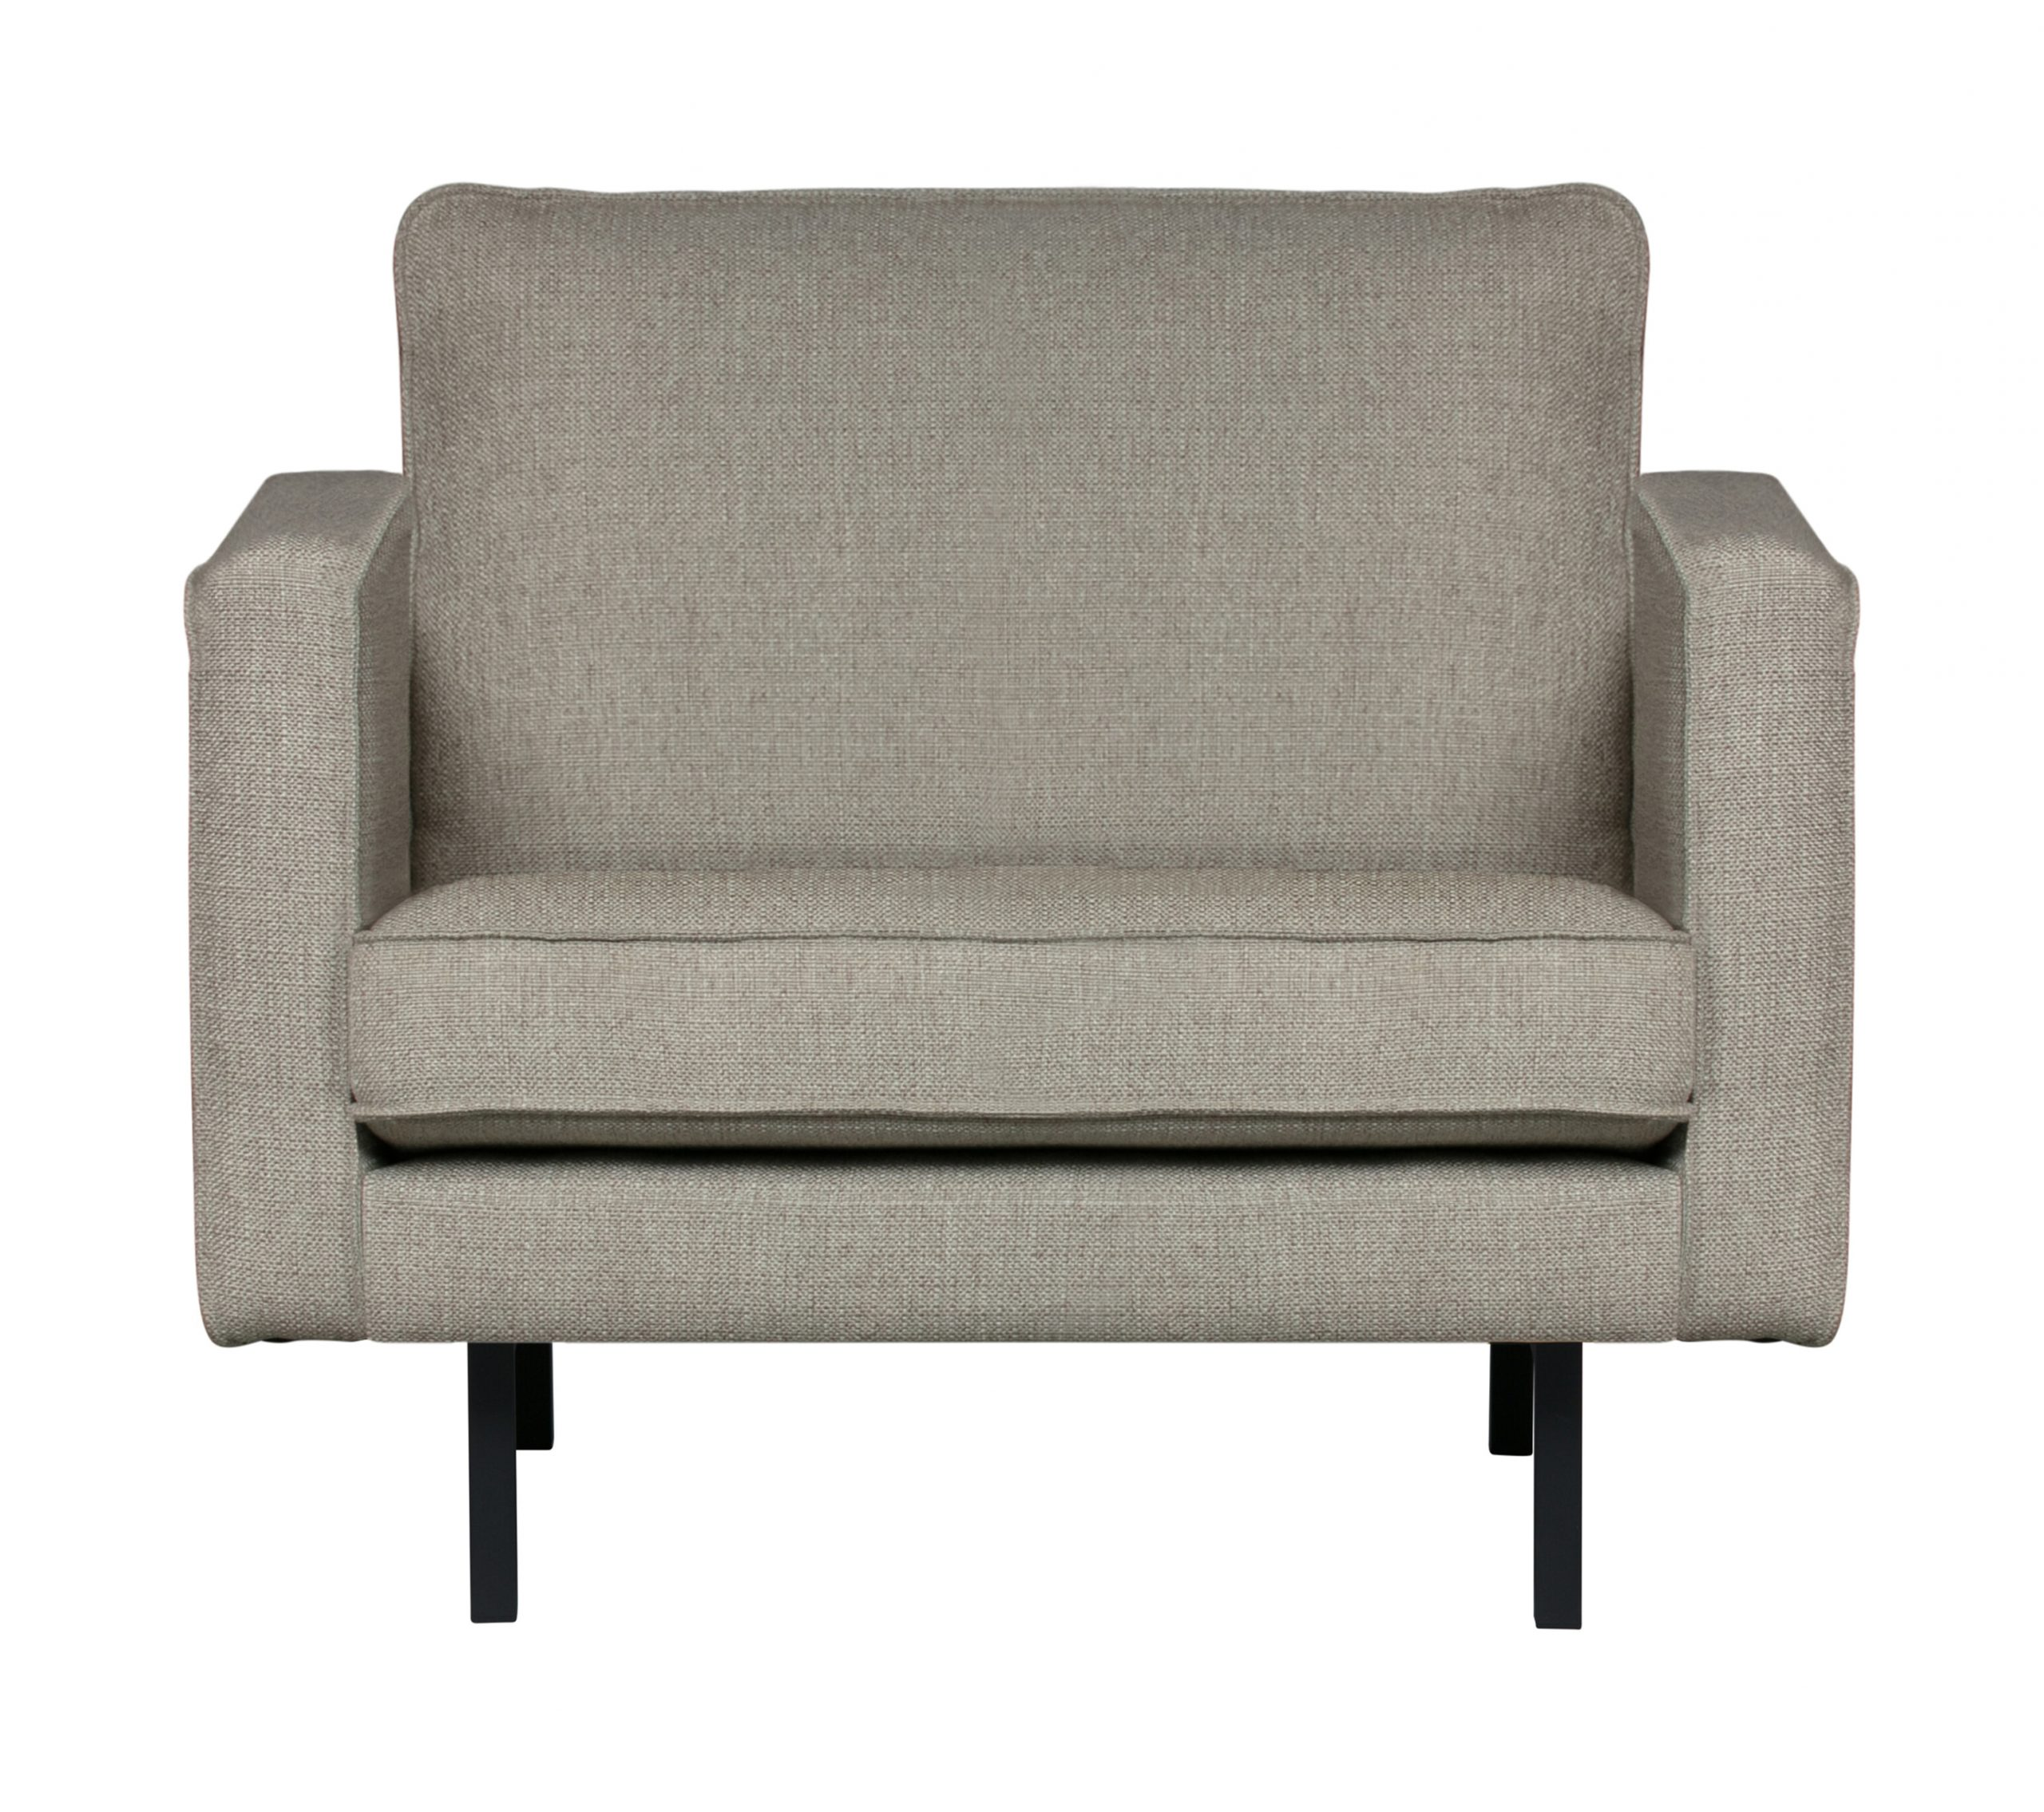 BePureHome Fauteuil 'Rodeo' Stretched, kleur Nougat | BePureHome